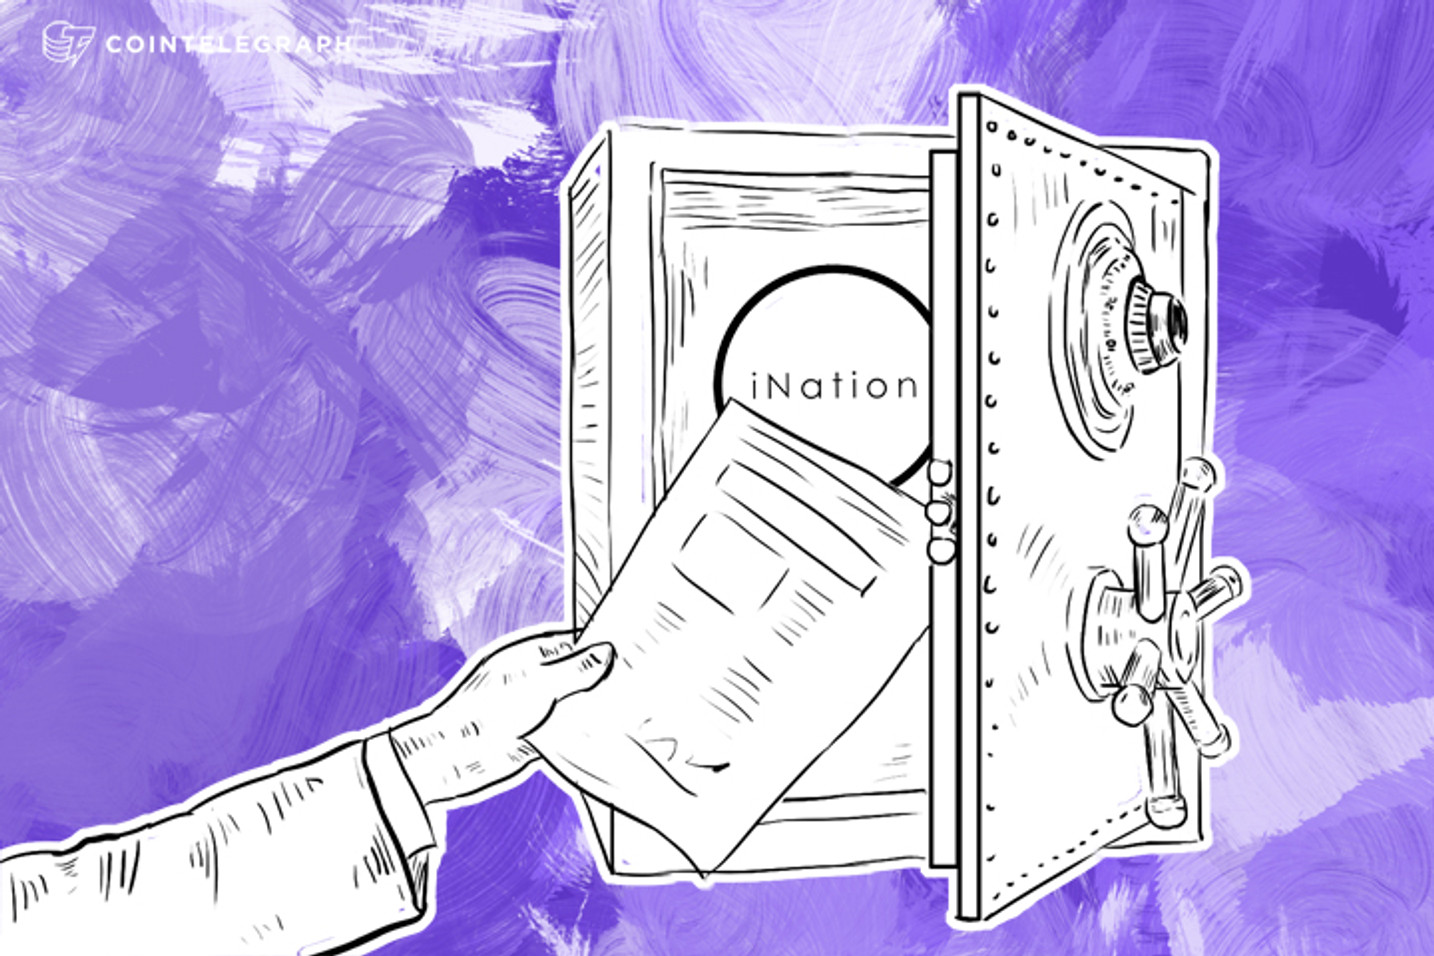 Storing Your Life on the Blockchain with iNation